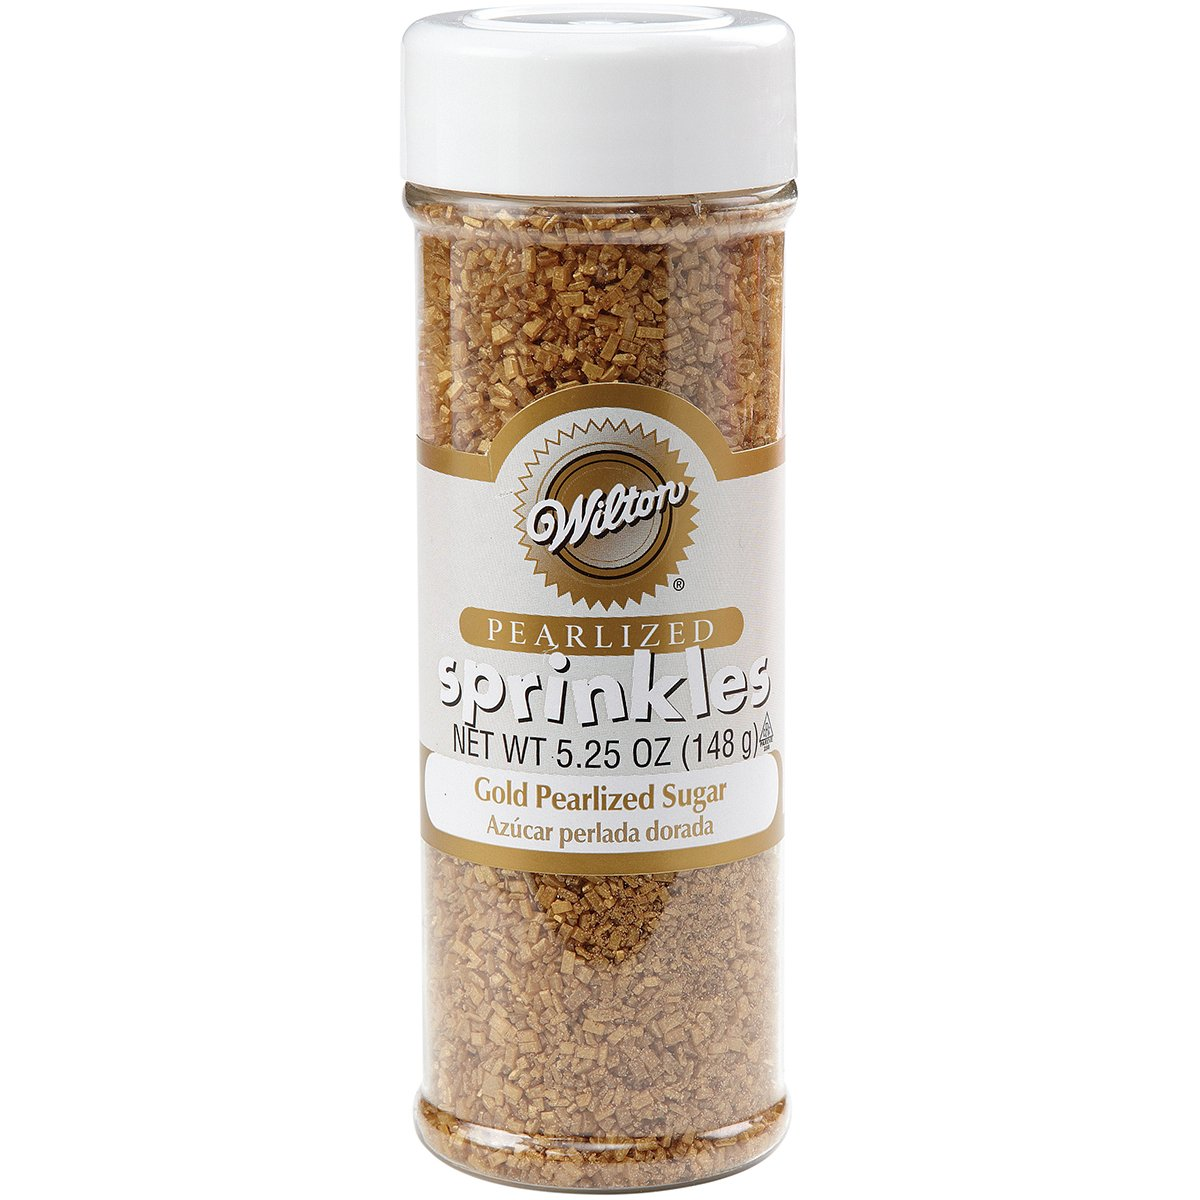 Wilton - 710-041 Wilton Gold Pearlized Sugar Sprinkles, 5.25 oz.